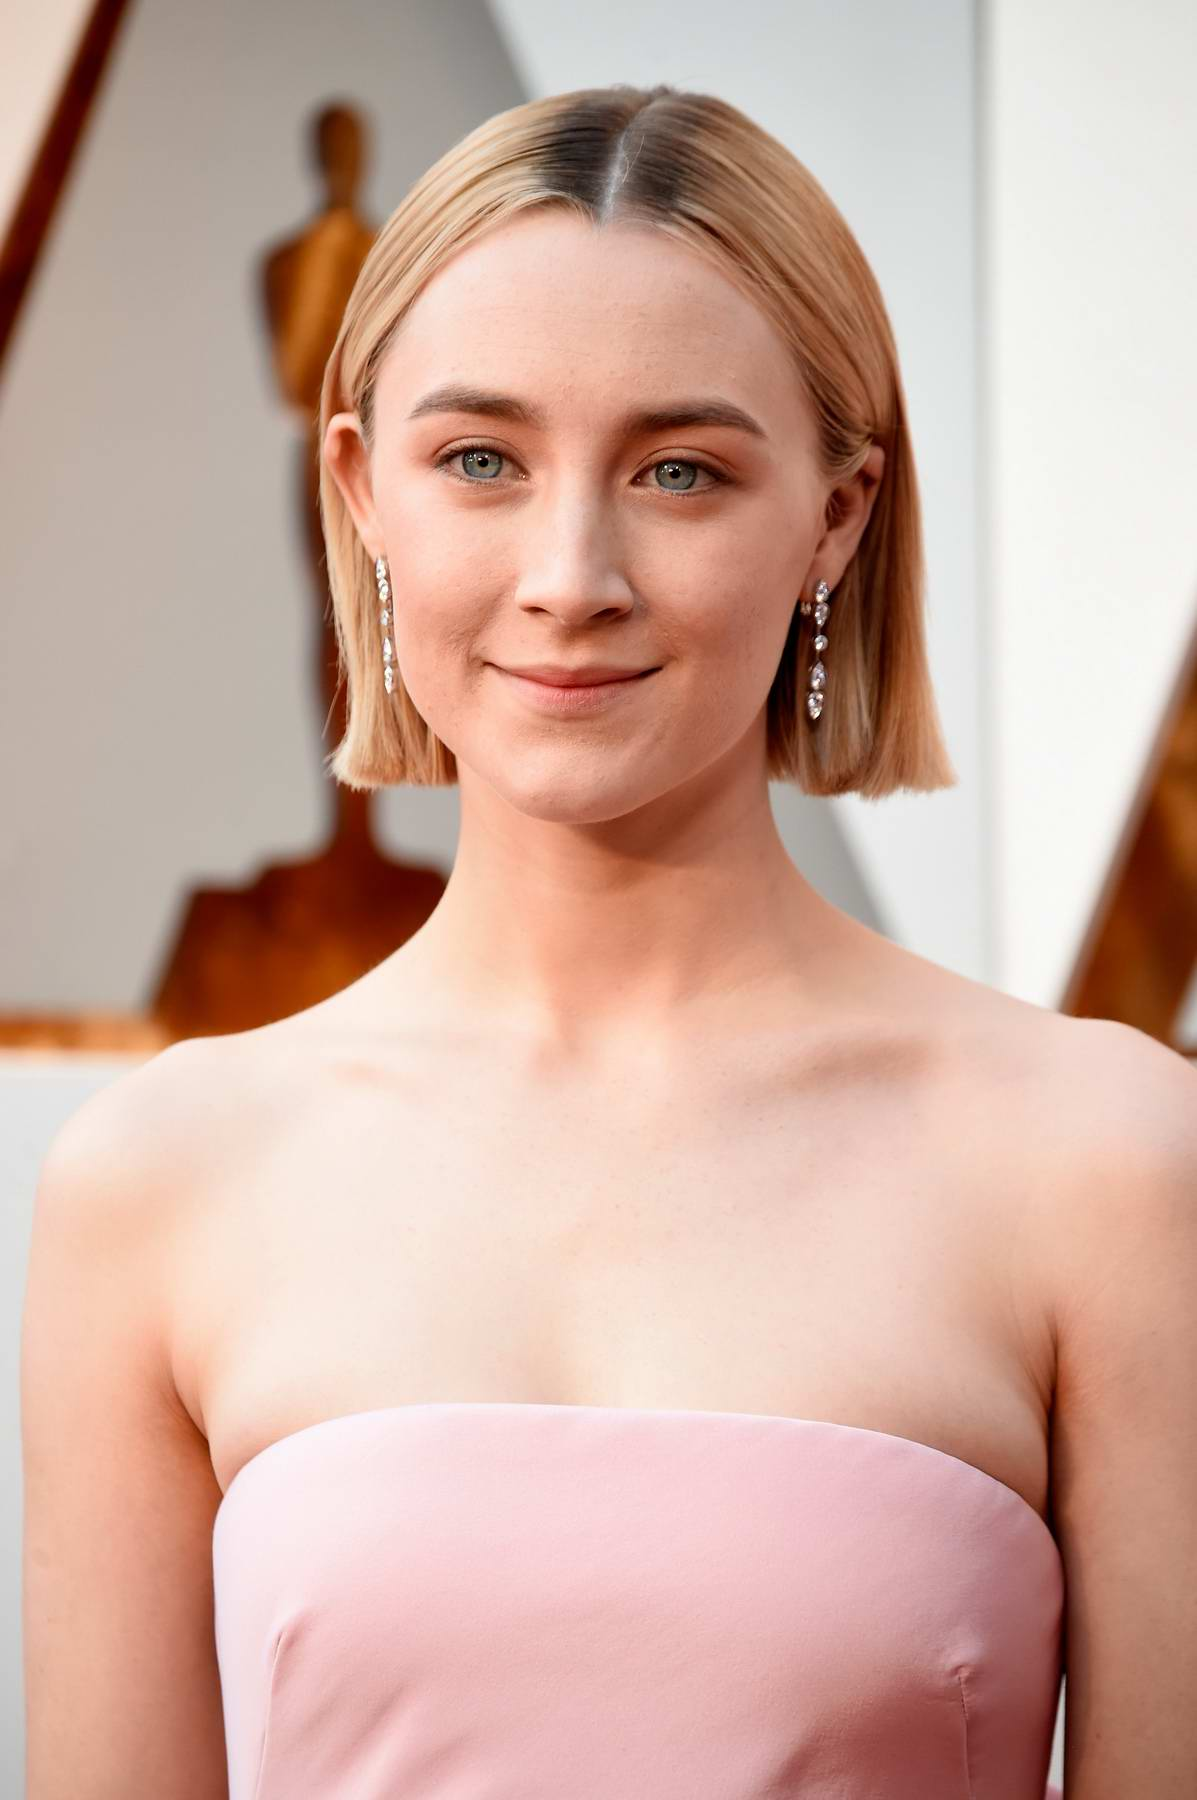 Saoirse Ronan attends The 90th Annual Academy Awards (Oscars 2018) held at Dolby Theatre in Hollywood, Los Angeles